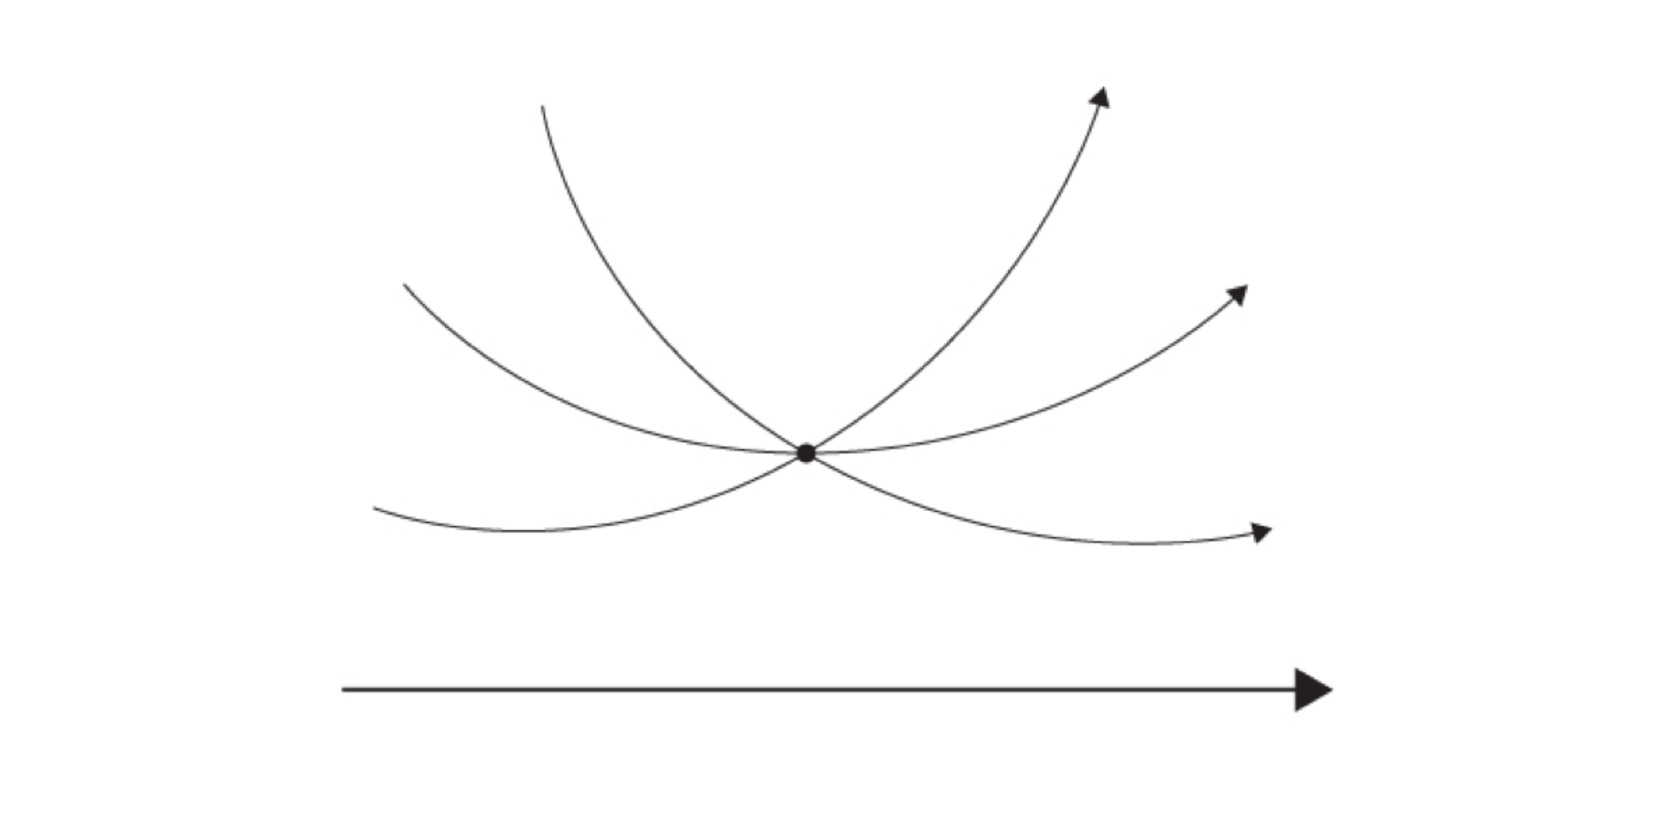 What if the straight lines look curved? - Image Credit: Margaret Wertheim, Author provided